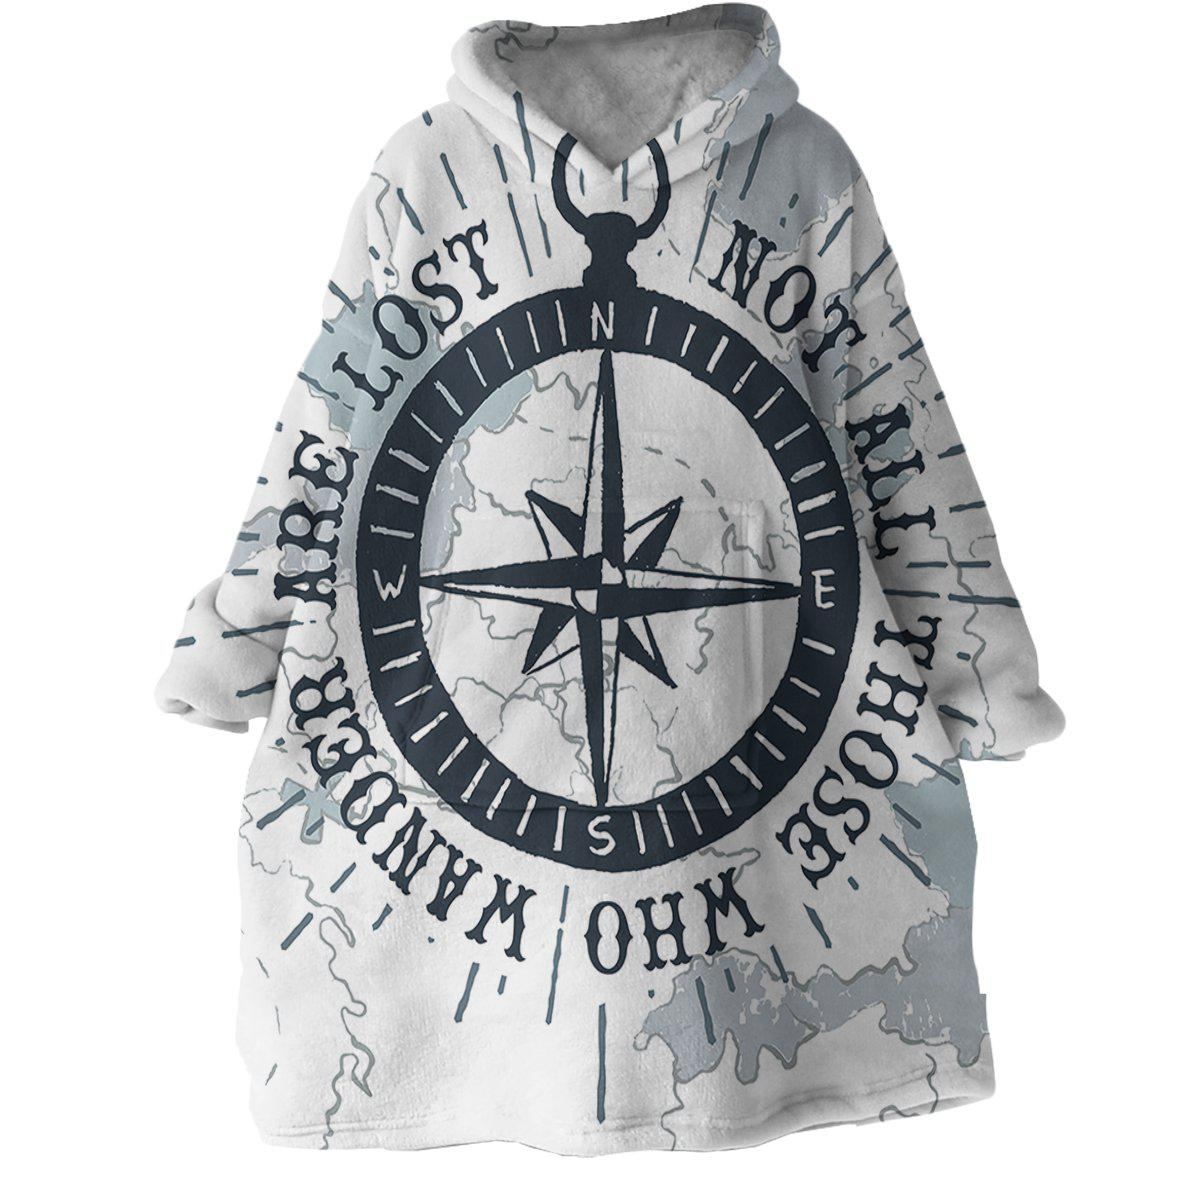 The Ocean Wanderer Wearable Blanket Hoodie-Coastal Passion